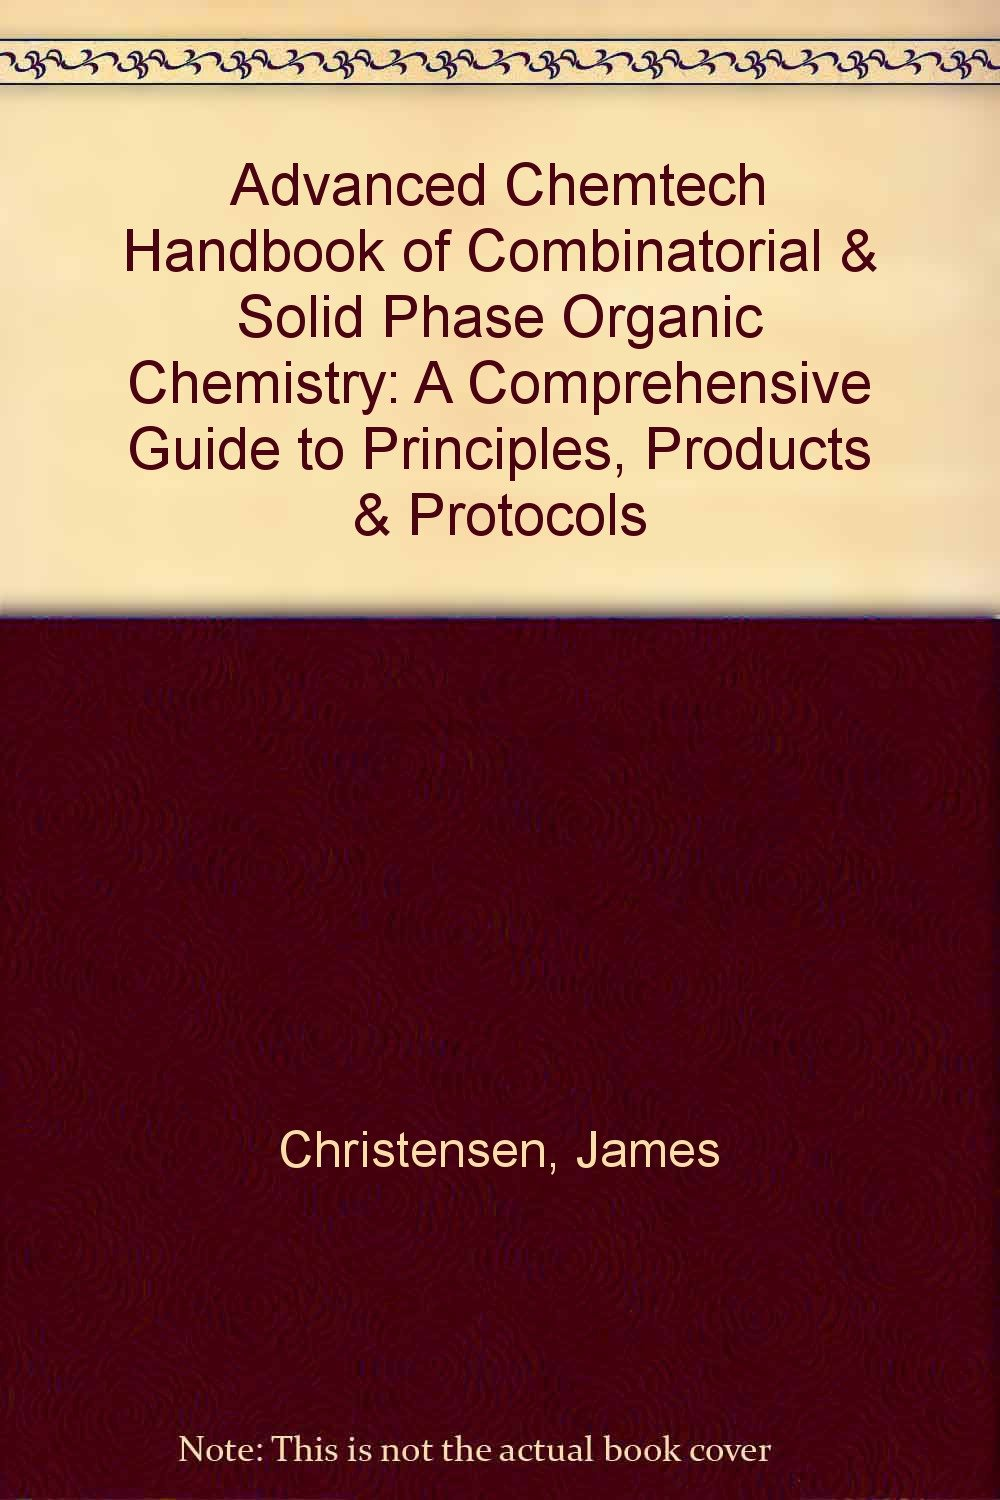 Advanced ChemTech Handbook of Combinatorial and Solid Phase